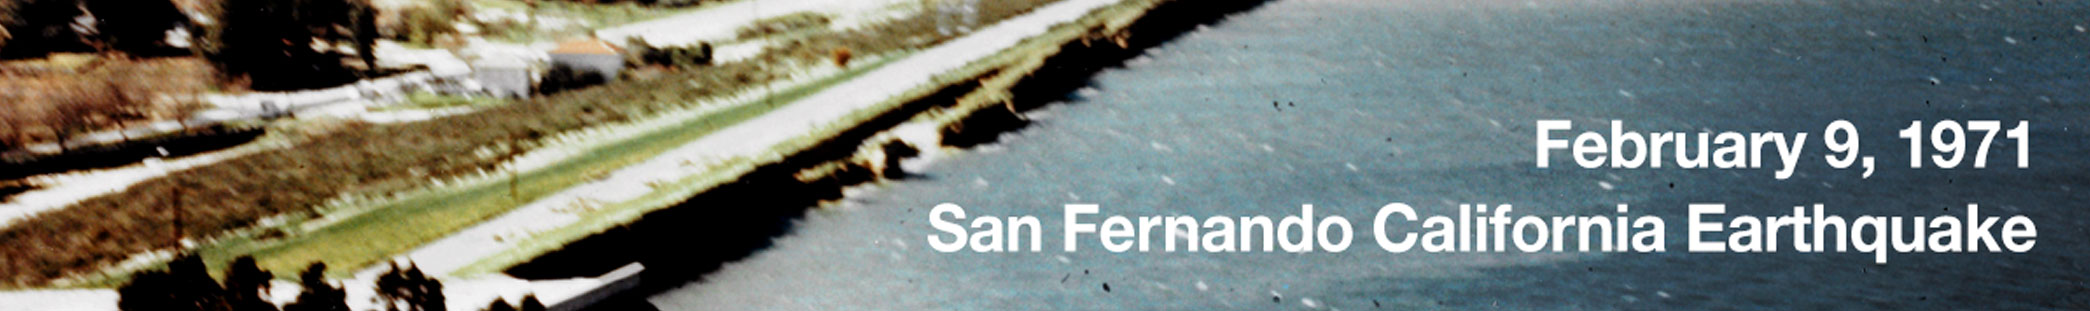 February 9, 1971 San Fernando California Earthquake Photo